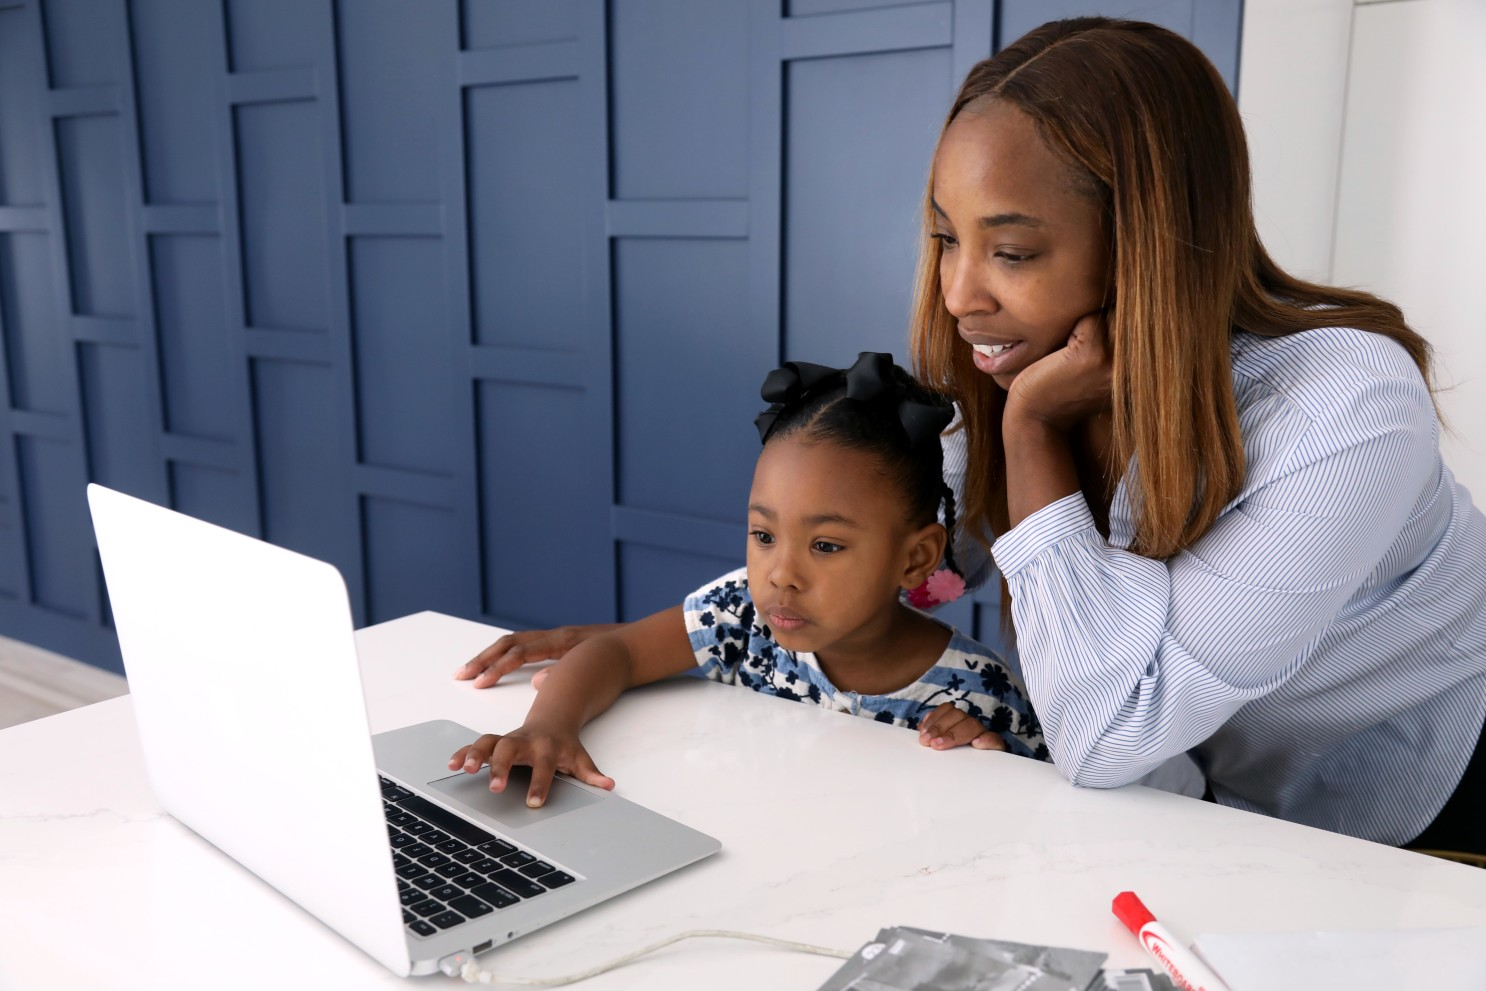 Some Black parents see less bullying, racism with online learning and are keeping kids home